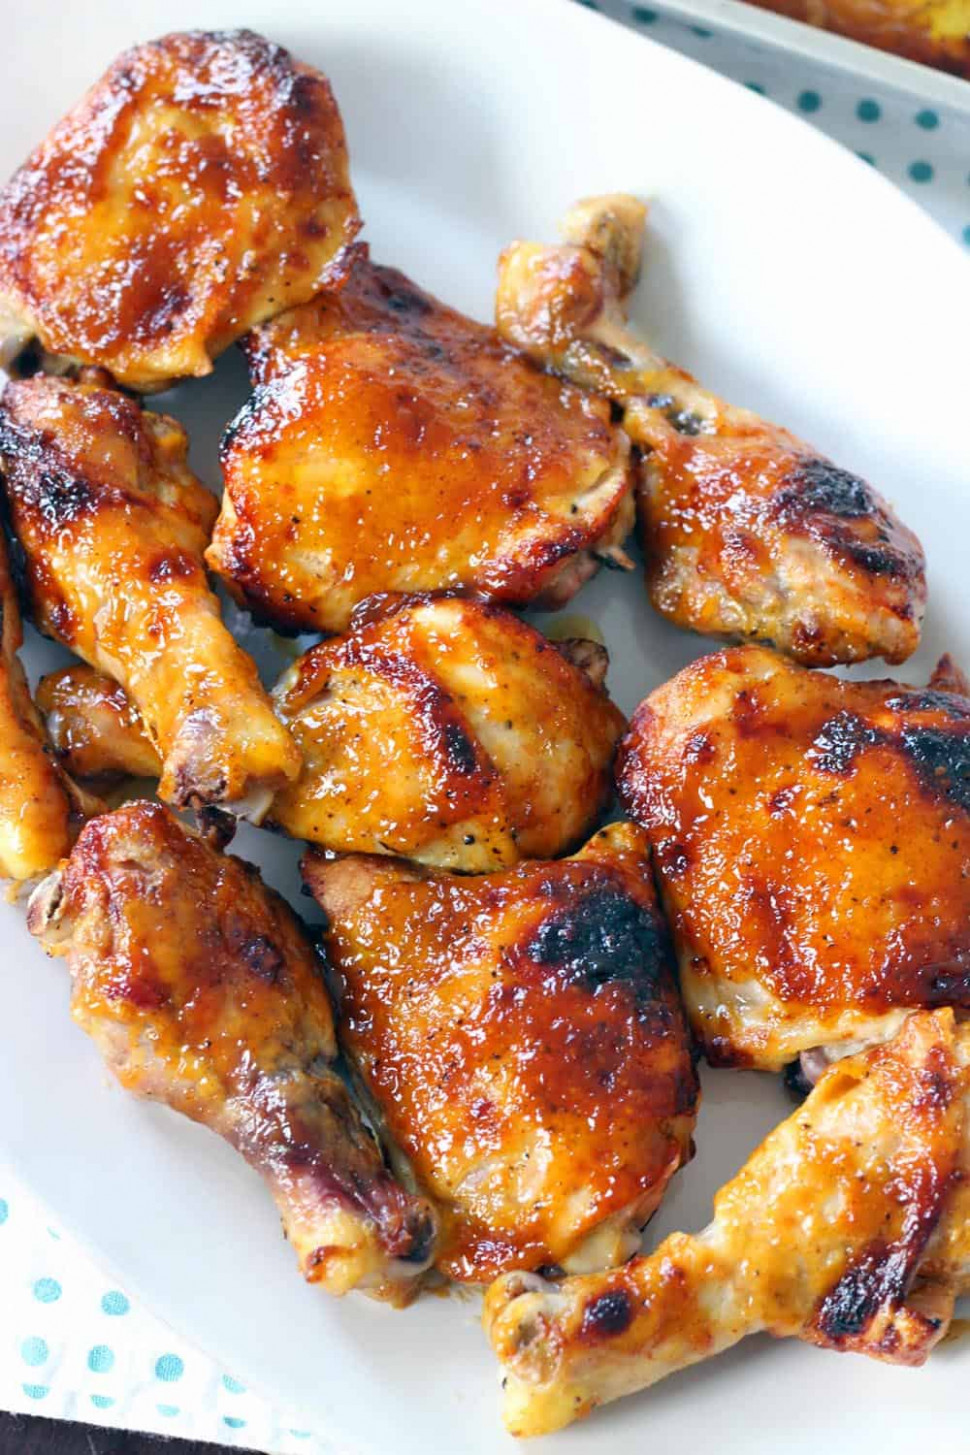 Two Ingredient Crispy Oven Baked BBQ Chicken - Recipes For Baked Chicken